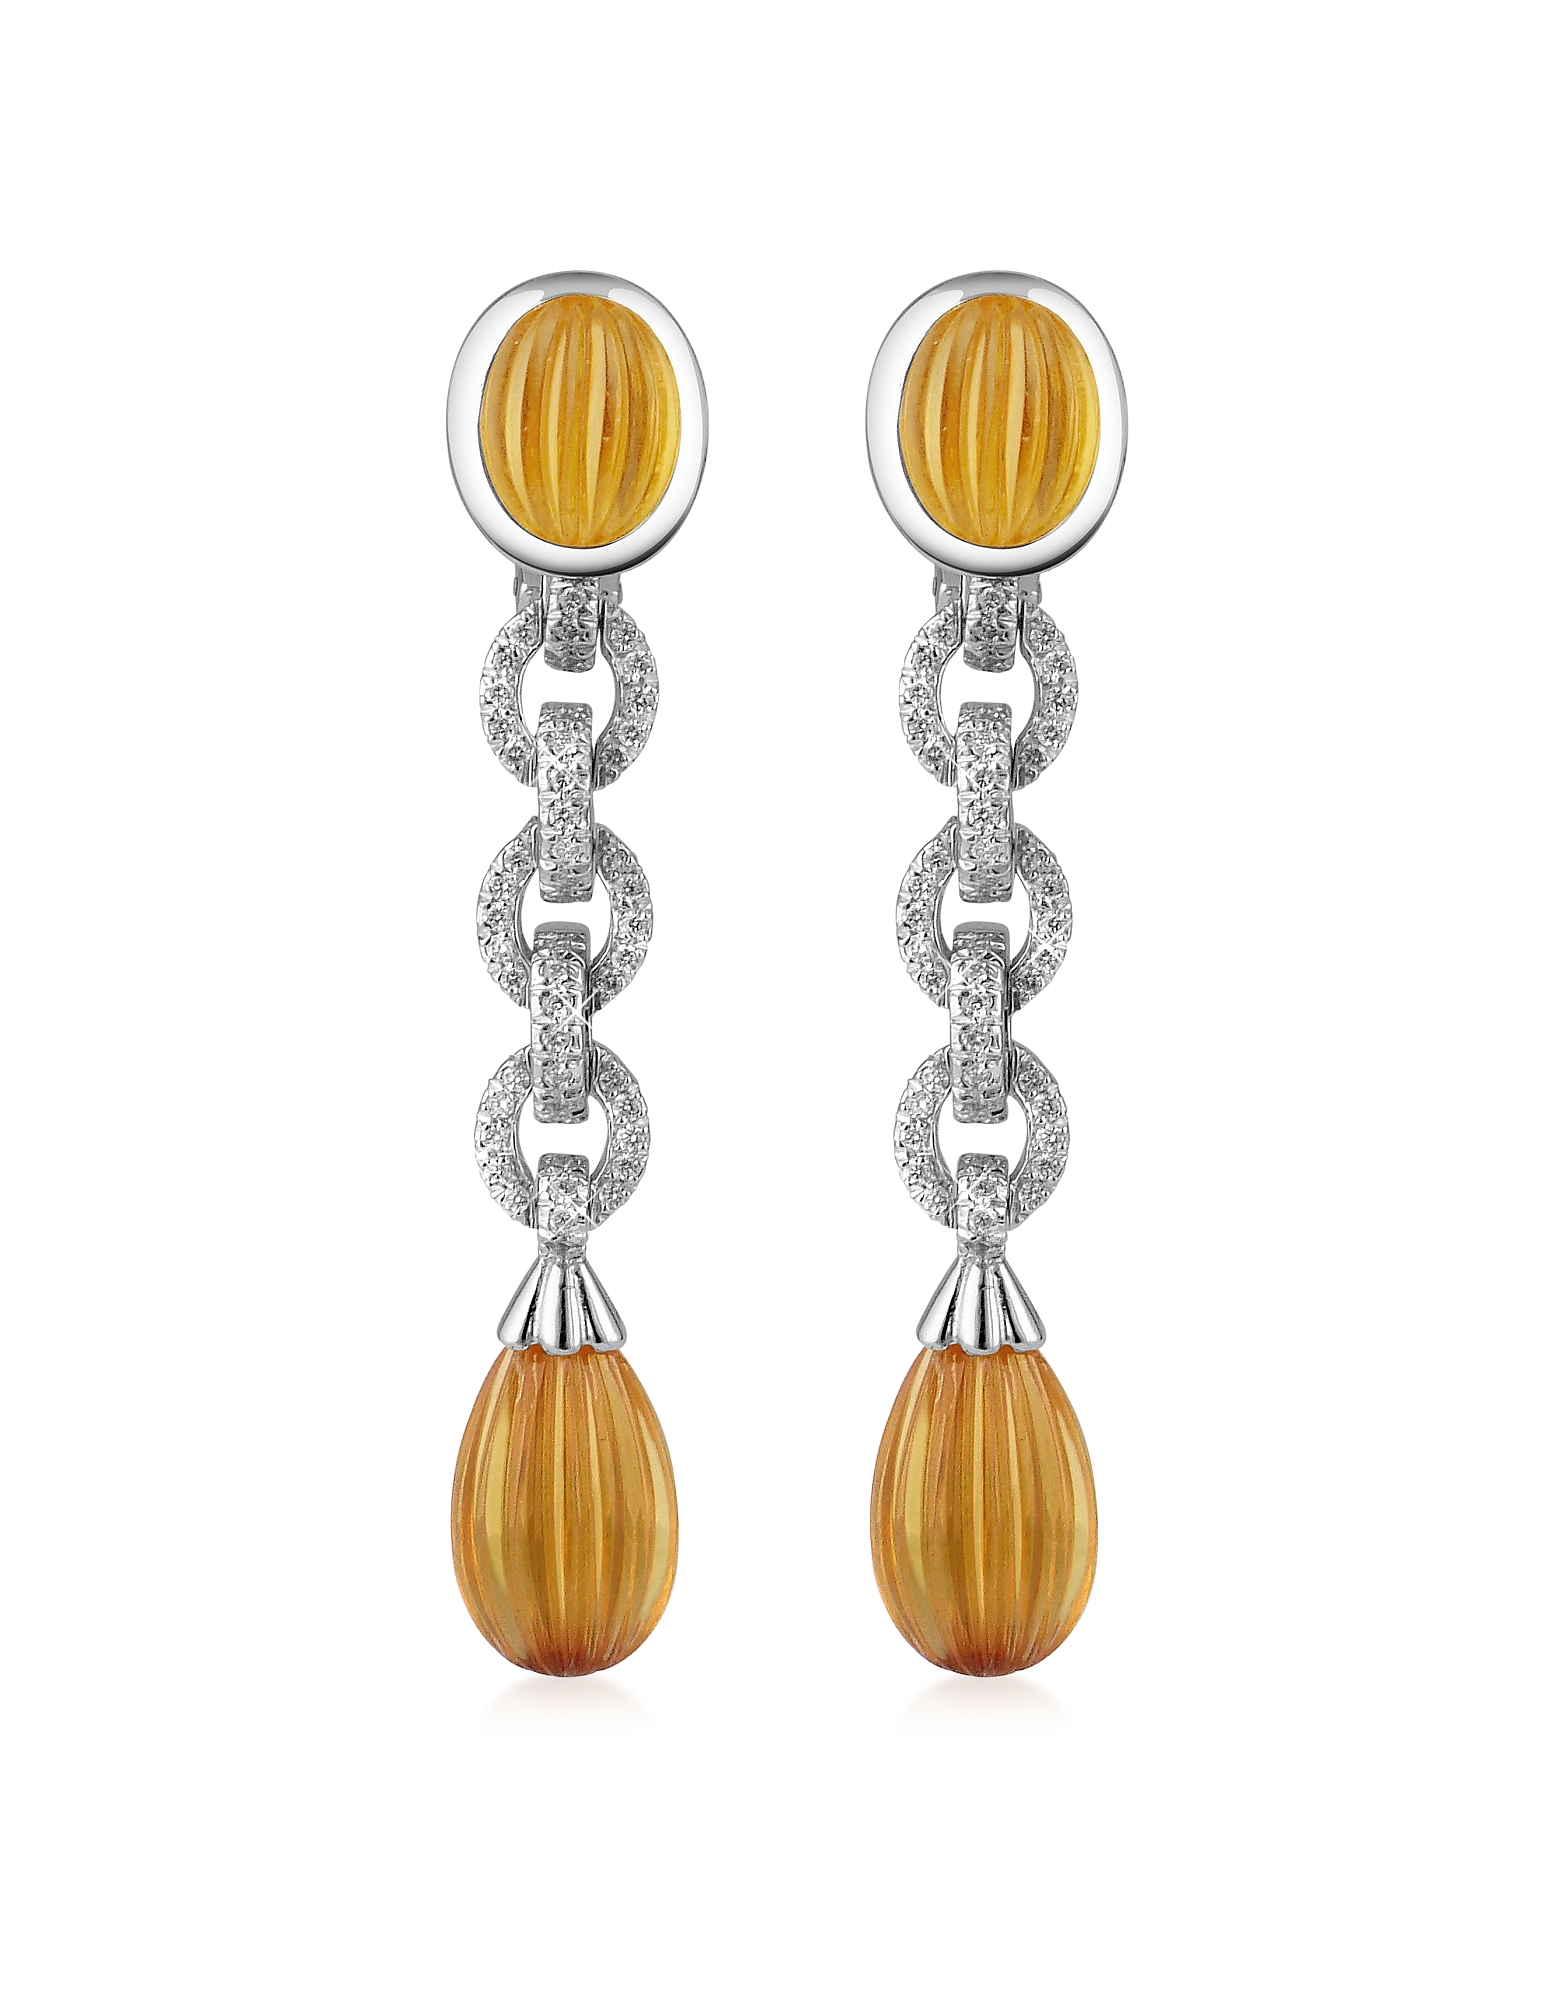 Roma Imperiale Designer Earrings, Carved Gemstone 18K Gold and Diamond Drop Earrings